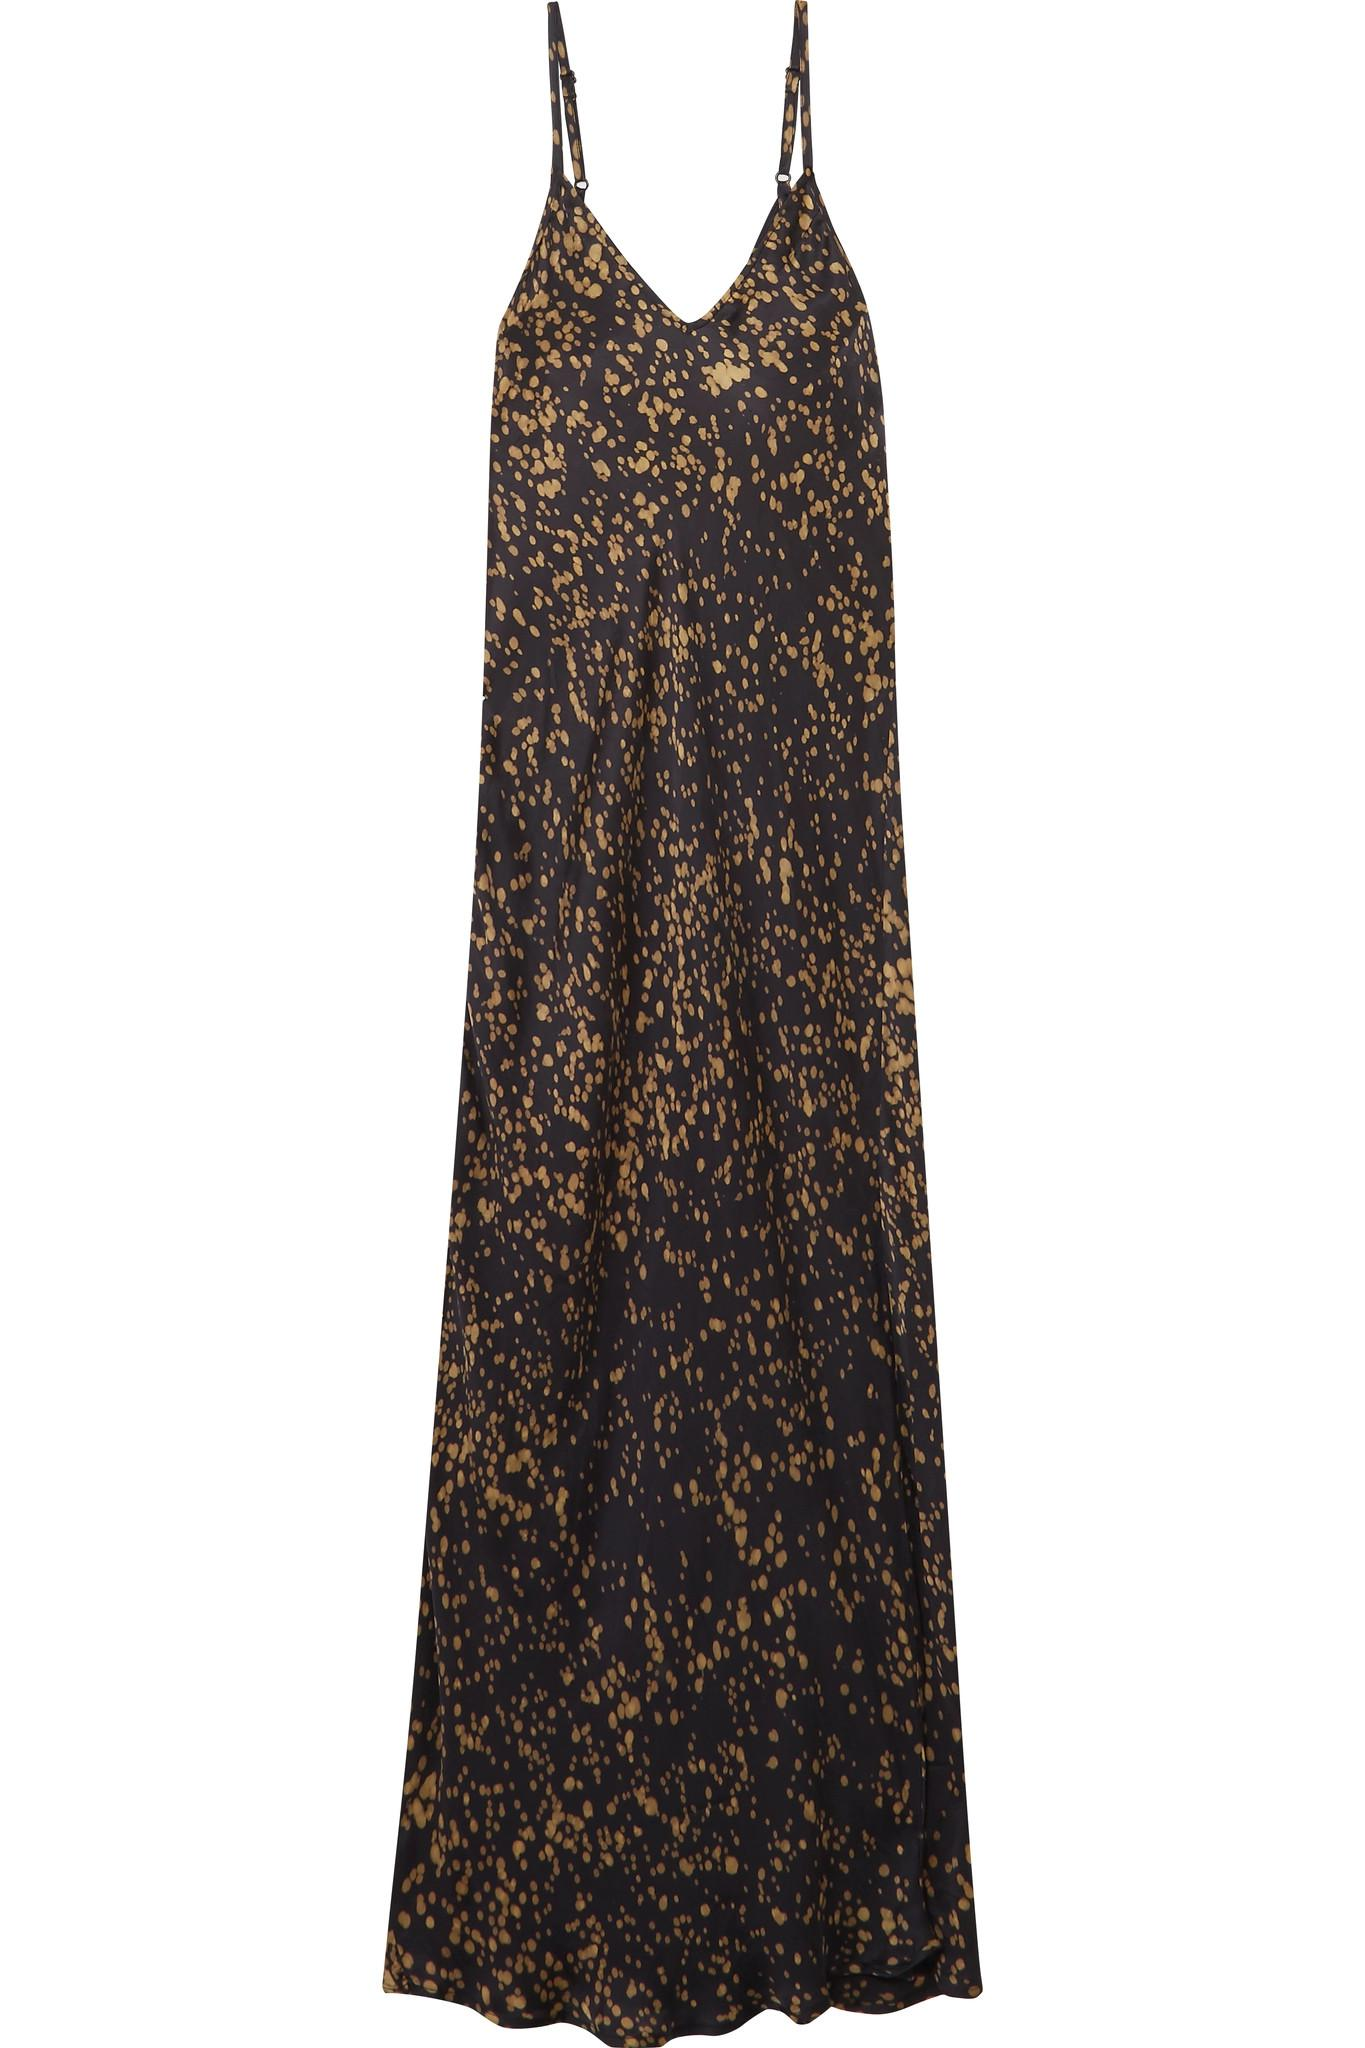 Grenelle Printed Satin Dress - Black Mes Demoiselles... YLo5eI